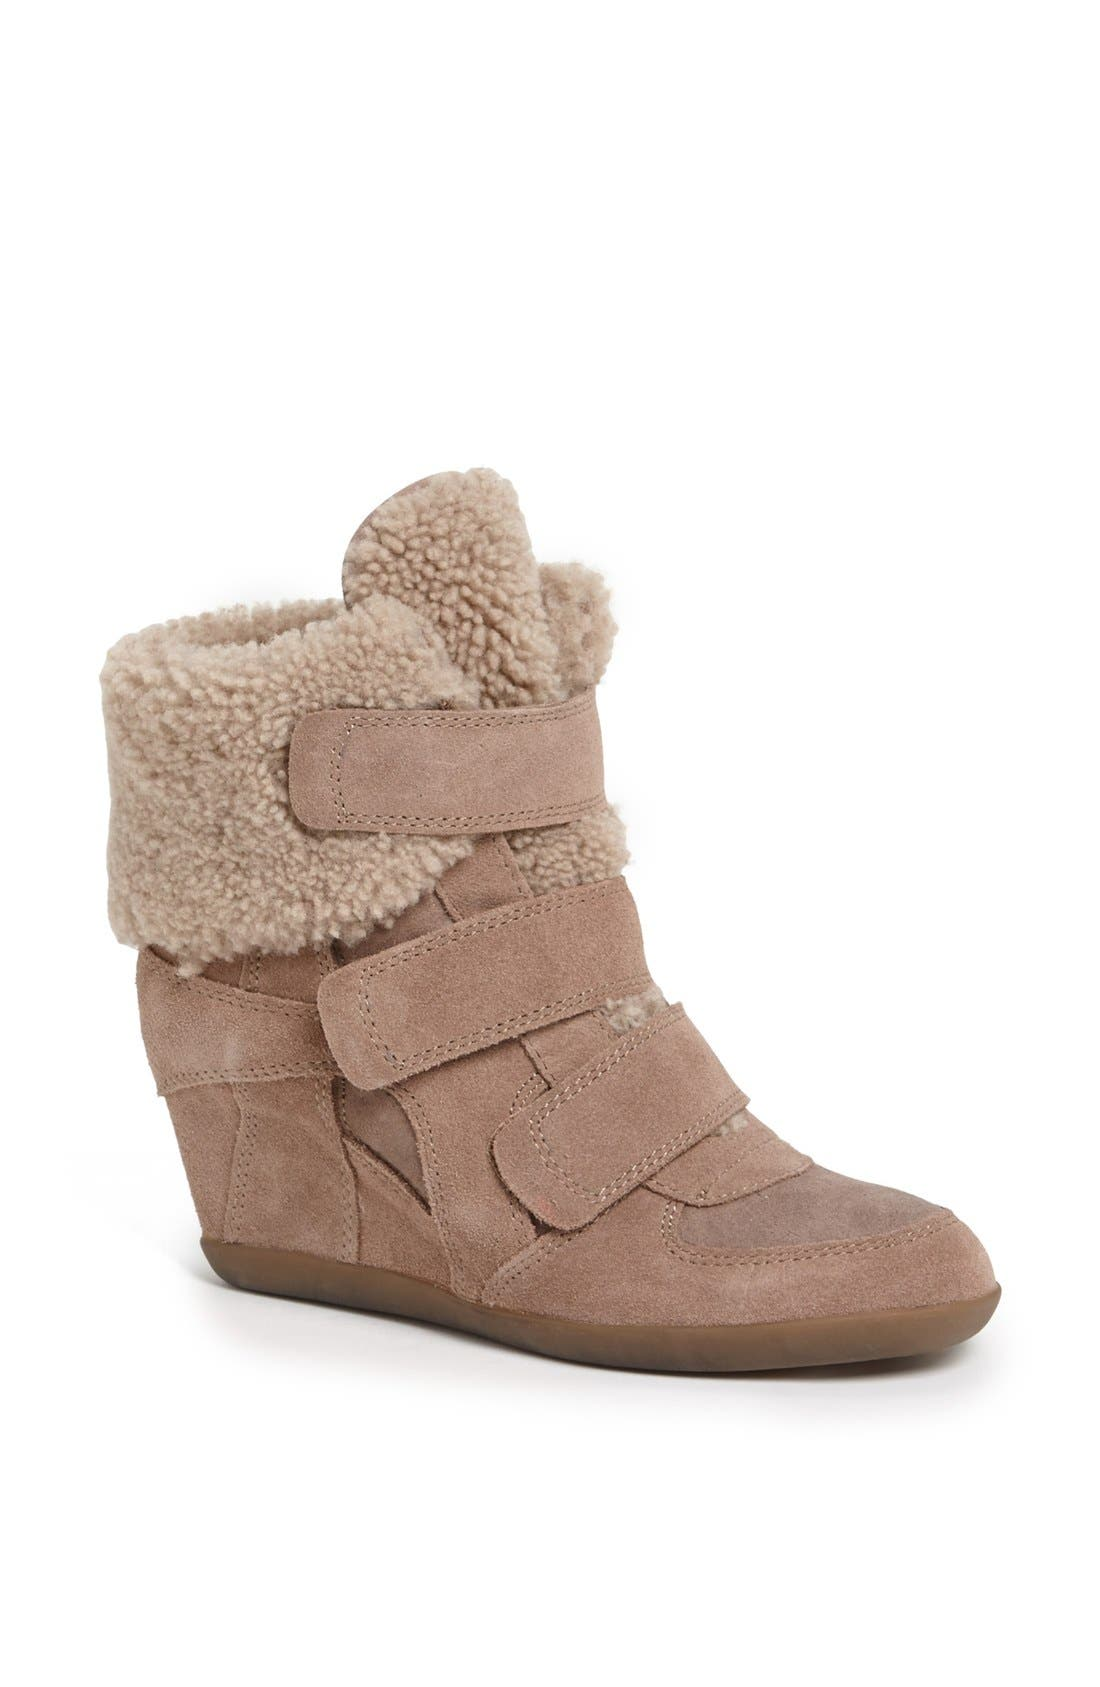 Main Image - Ash 'Brizz' Shearling Cuff Hidden Wedge Sneaker